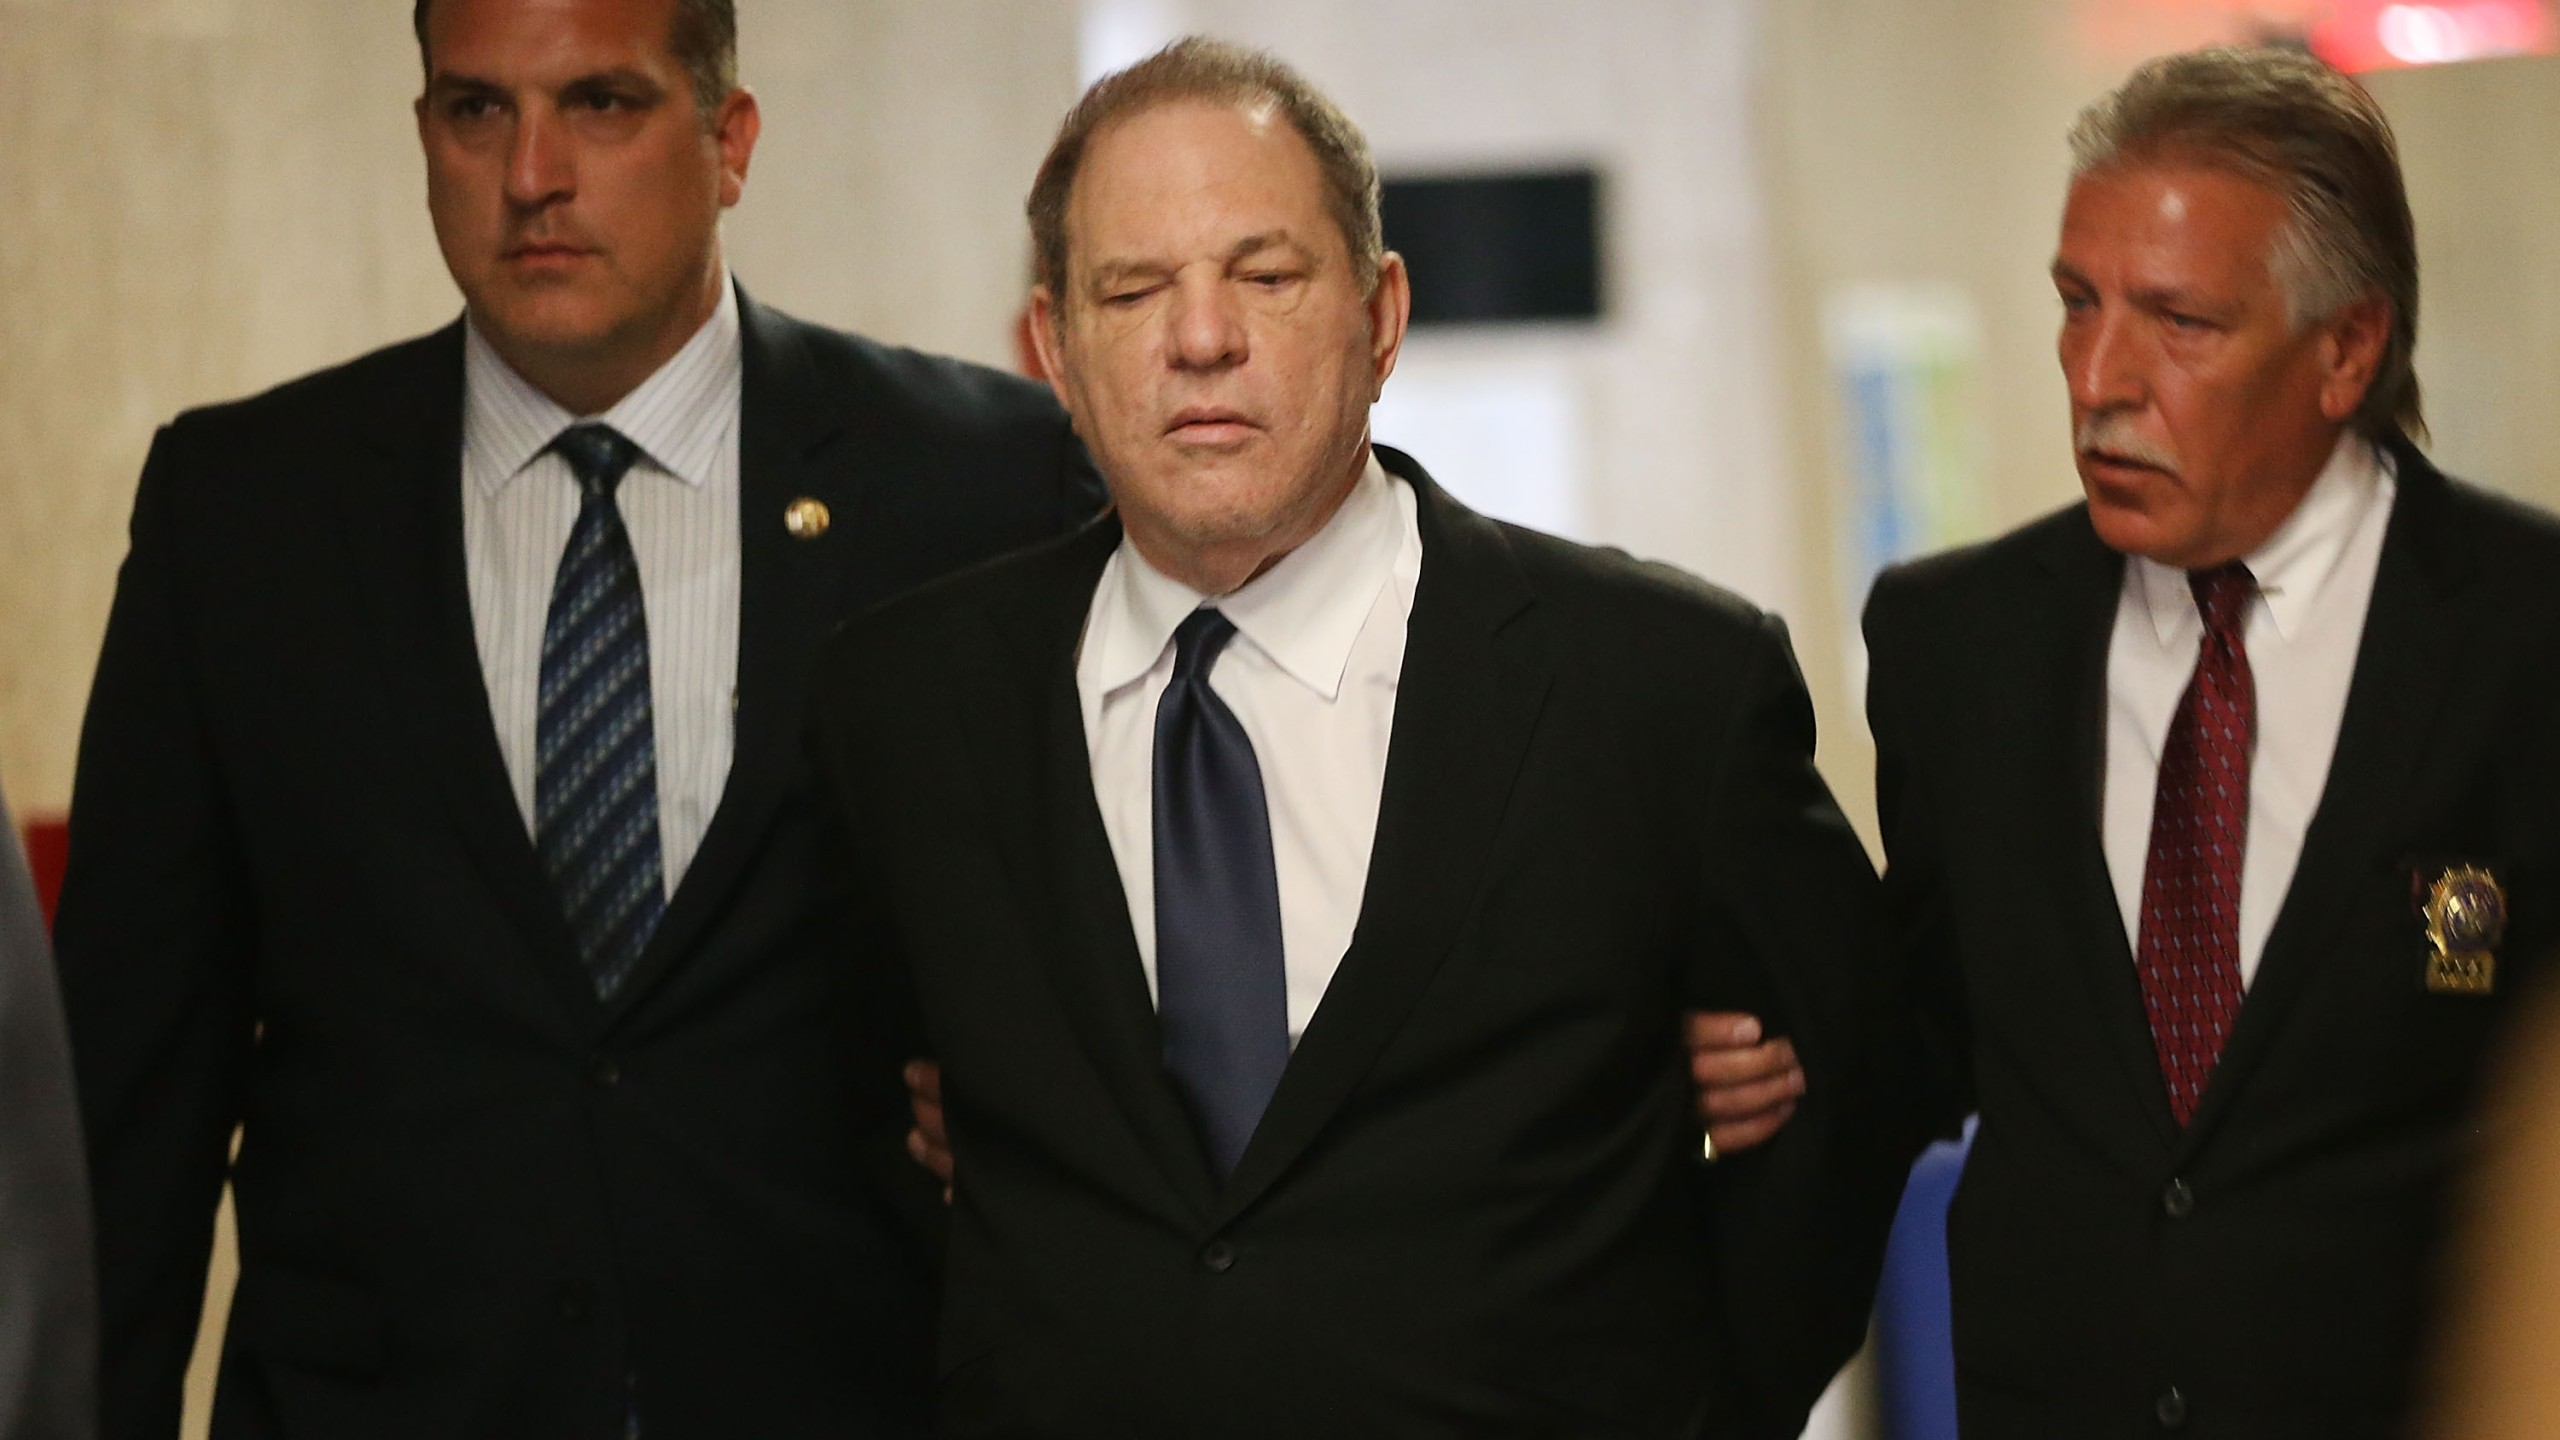 Harvey Weinstein is escorted in handcuffs into State Supreme Court on July 9, 2018 for arraignment on charges alleging he committed a sex crime against a third woman. (Credit: Spencer Platt/Getty Images)